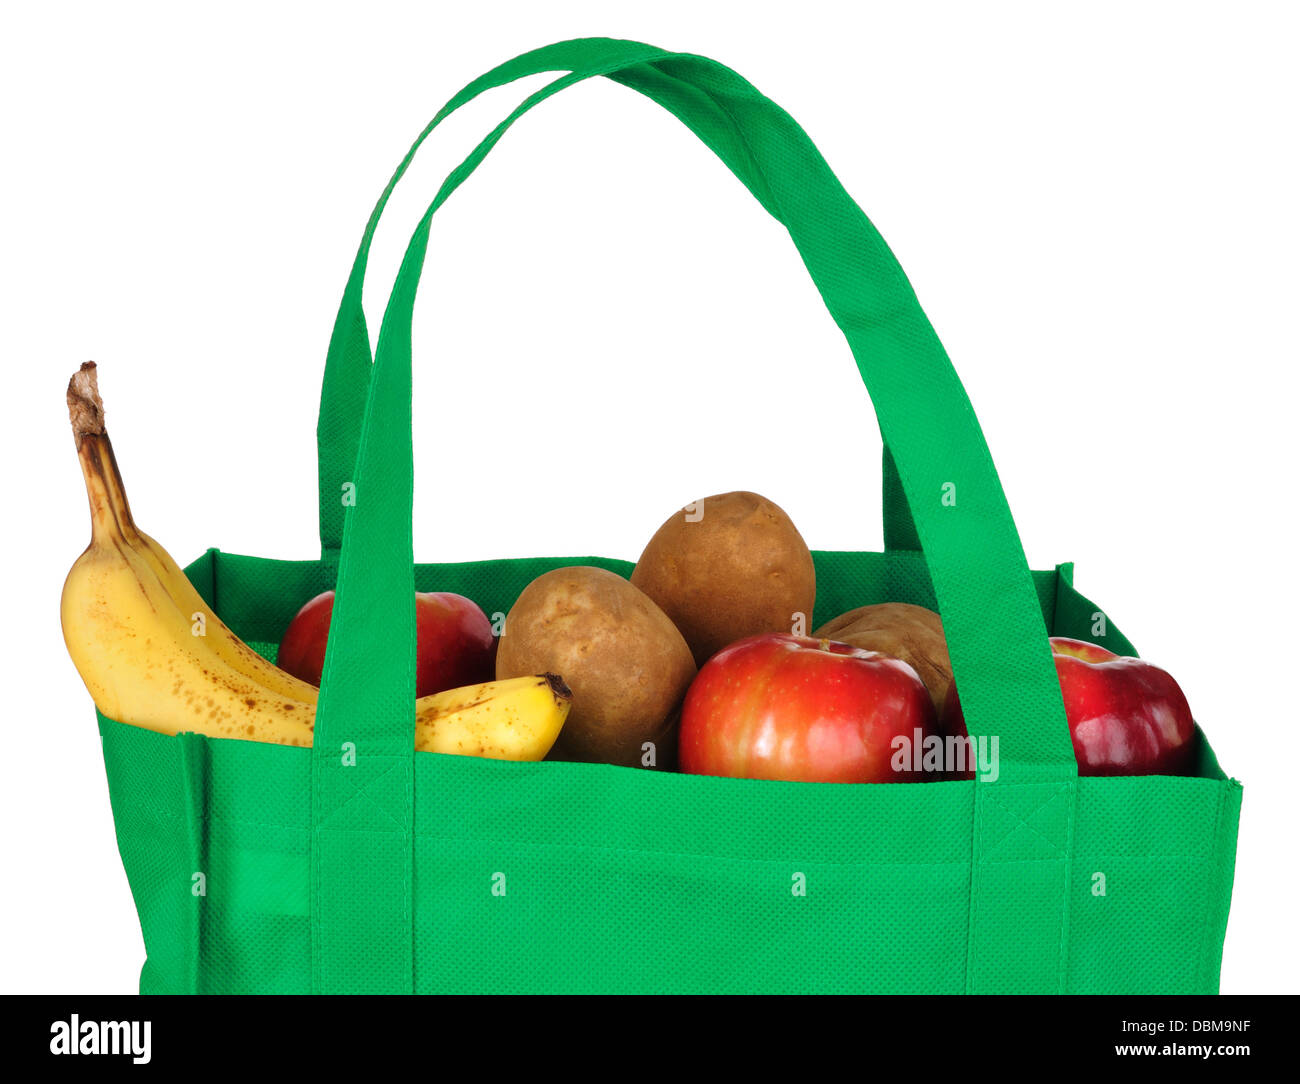 Shopping bag with fruit and vegetables - Stock Image